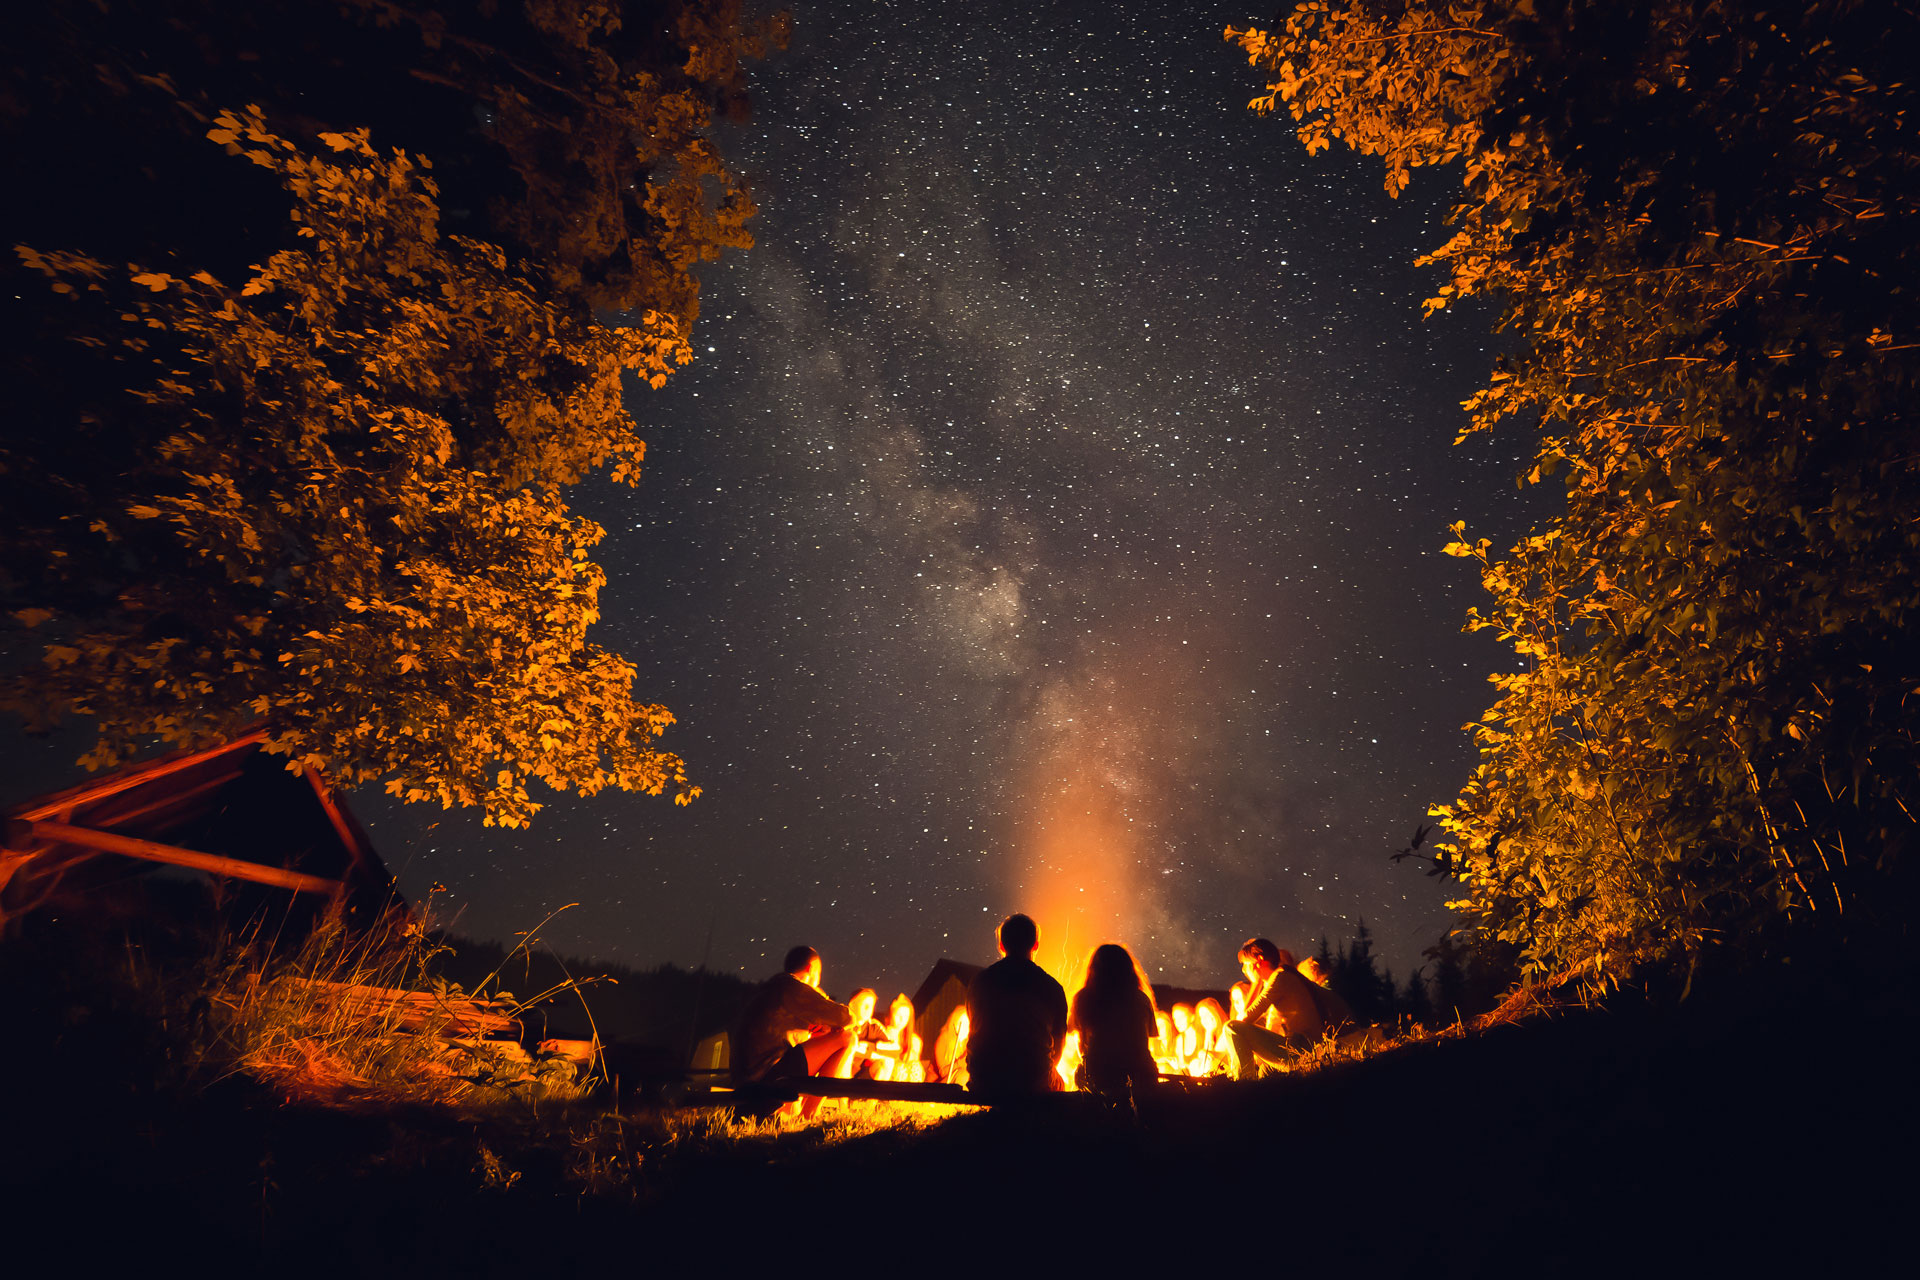 Guide to group campsites near Los Angeles and San Diego